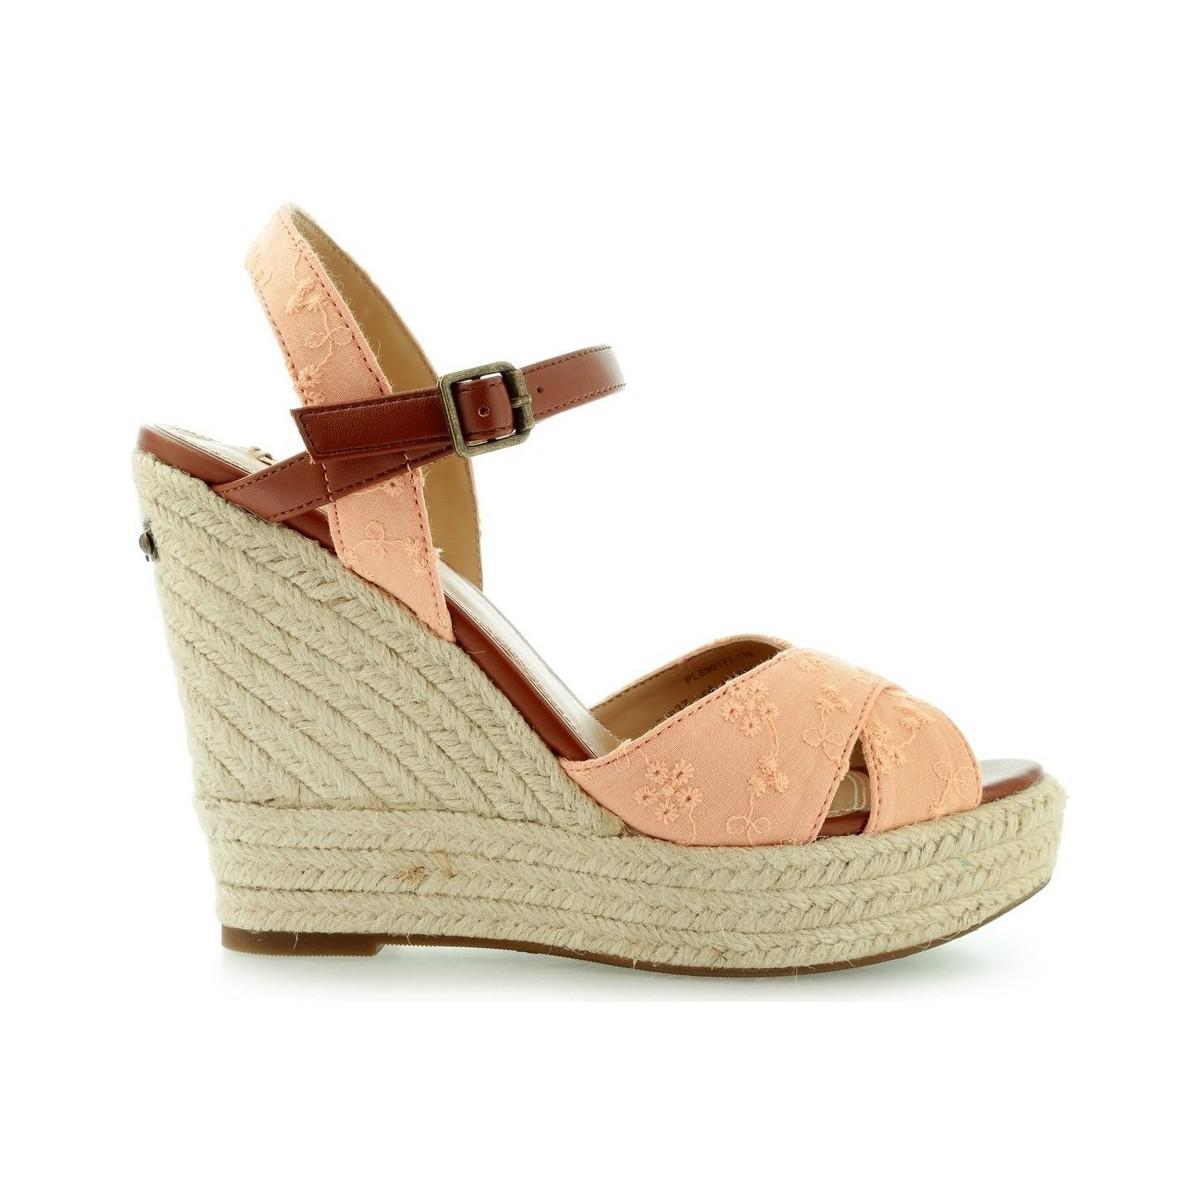 Sale Low Shipping Pepe Jeans Walker Romantic PLS90177 women's Sandals in Many Kinds Of For Sale Clearance Cheap wn44e